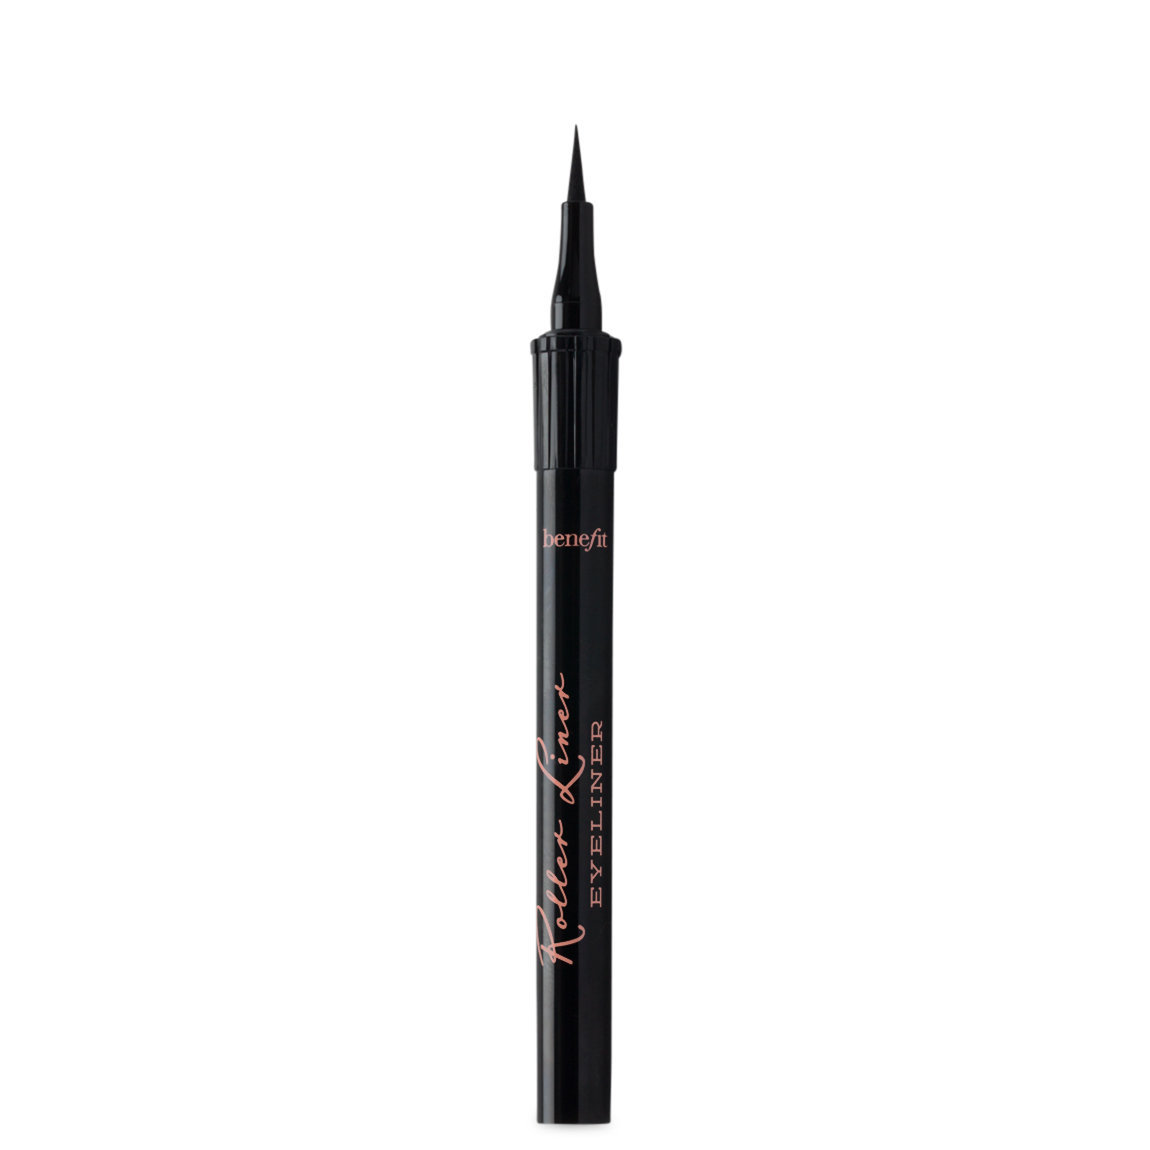 7f2b779e025 Benefit Cosmetics Roller Liner Liquid Eyeliner Black | Beautylish